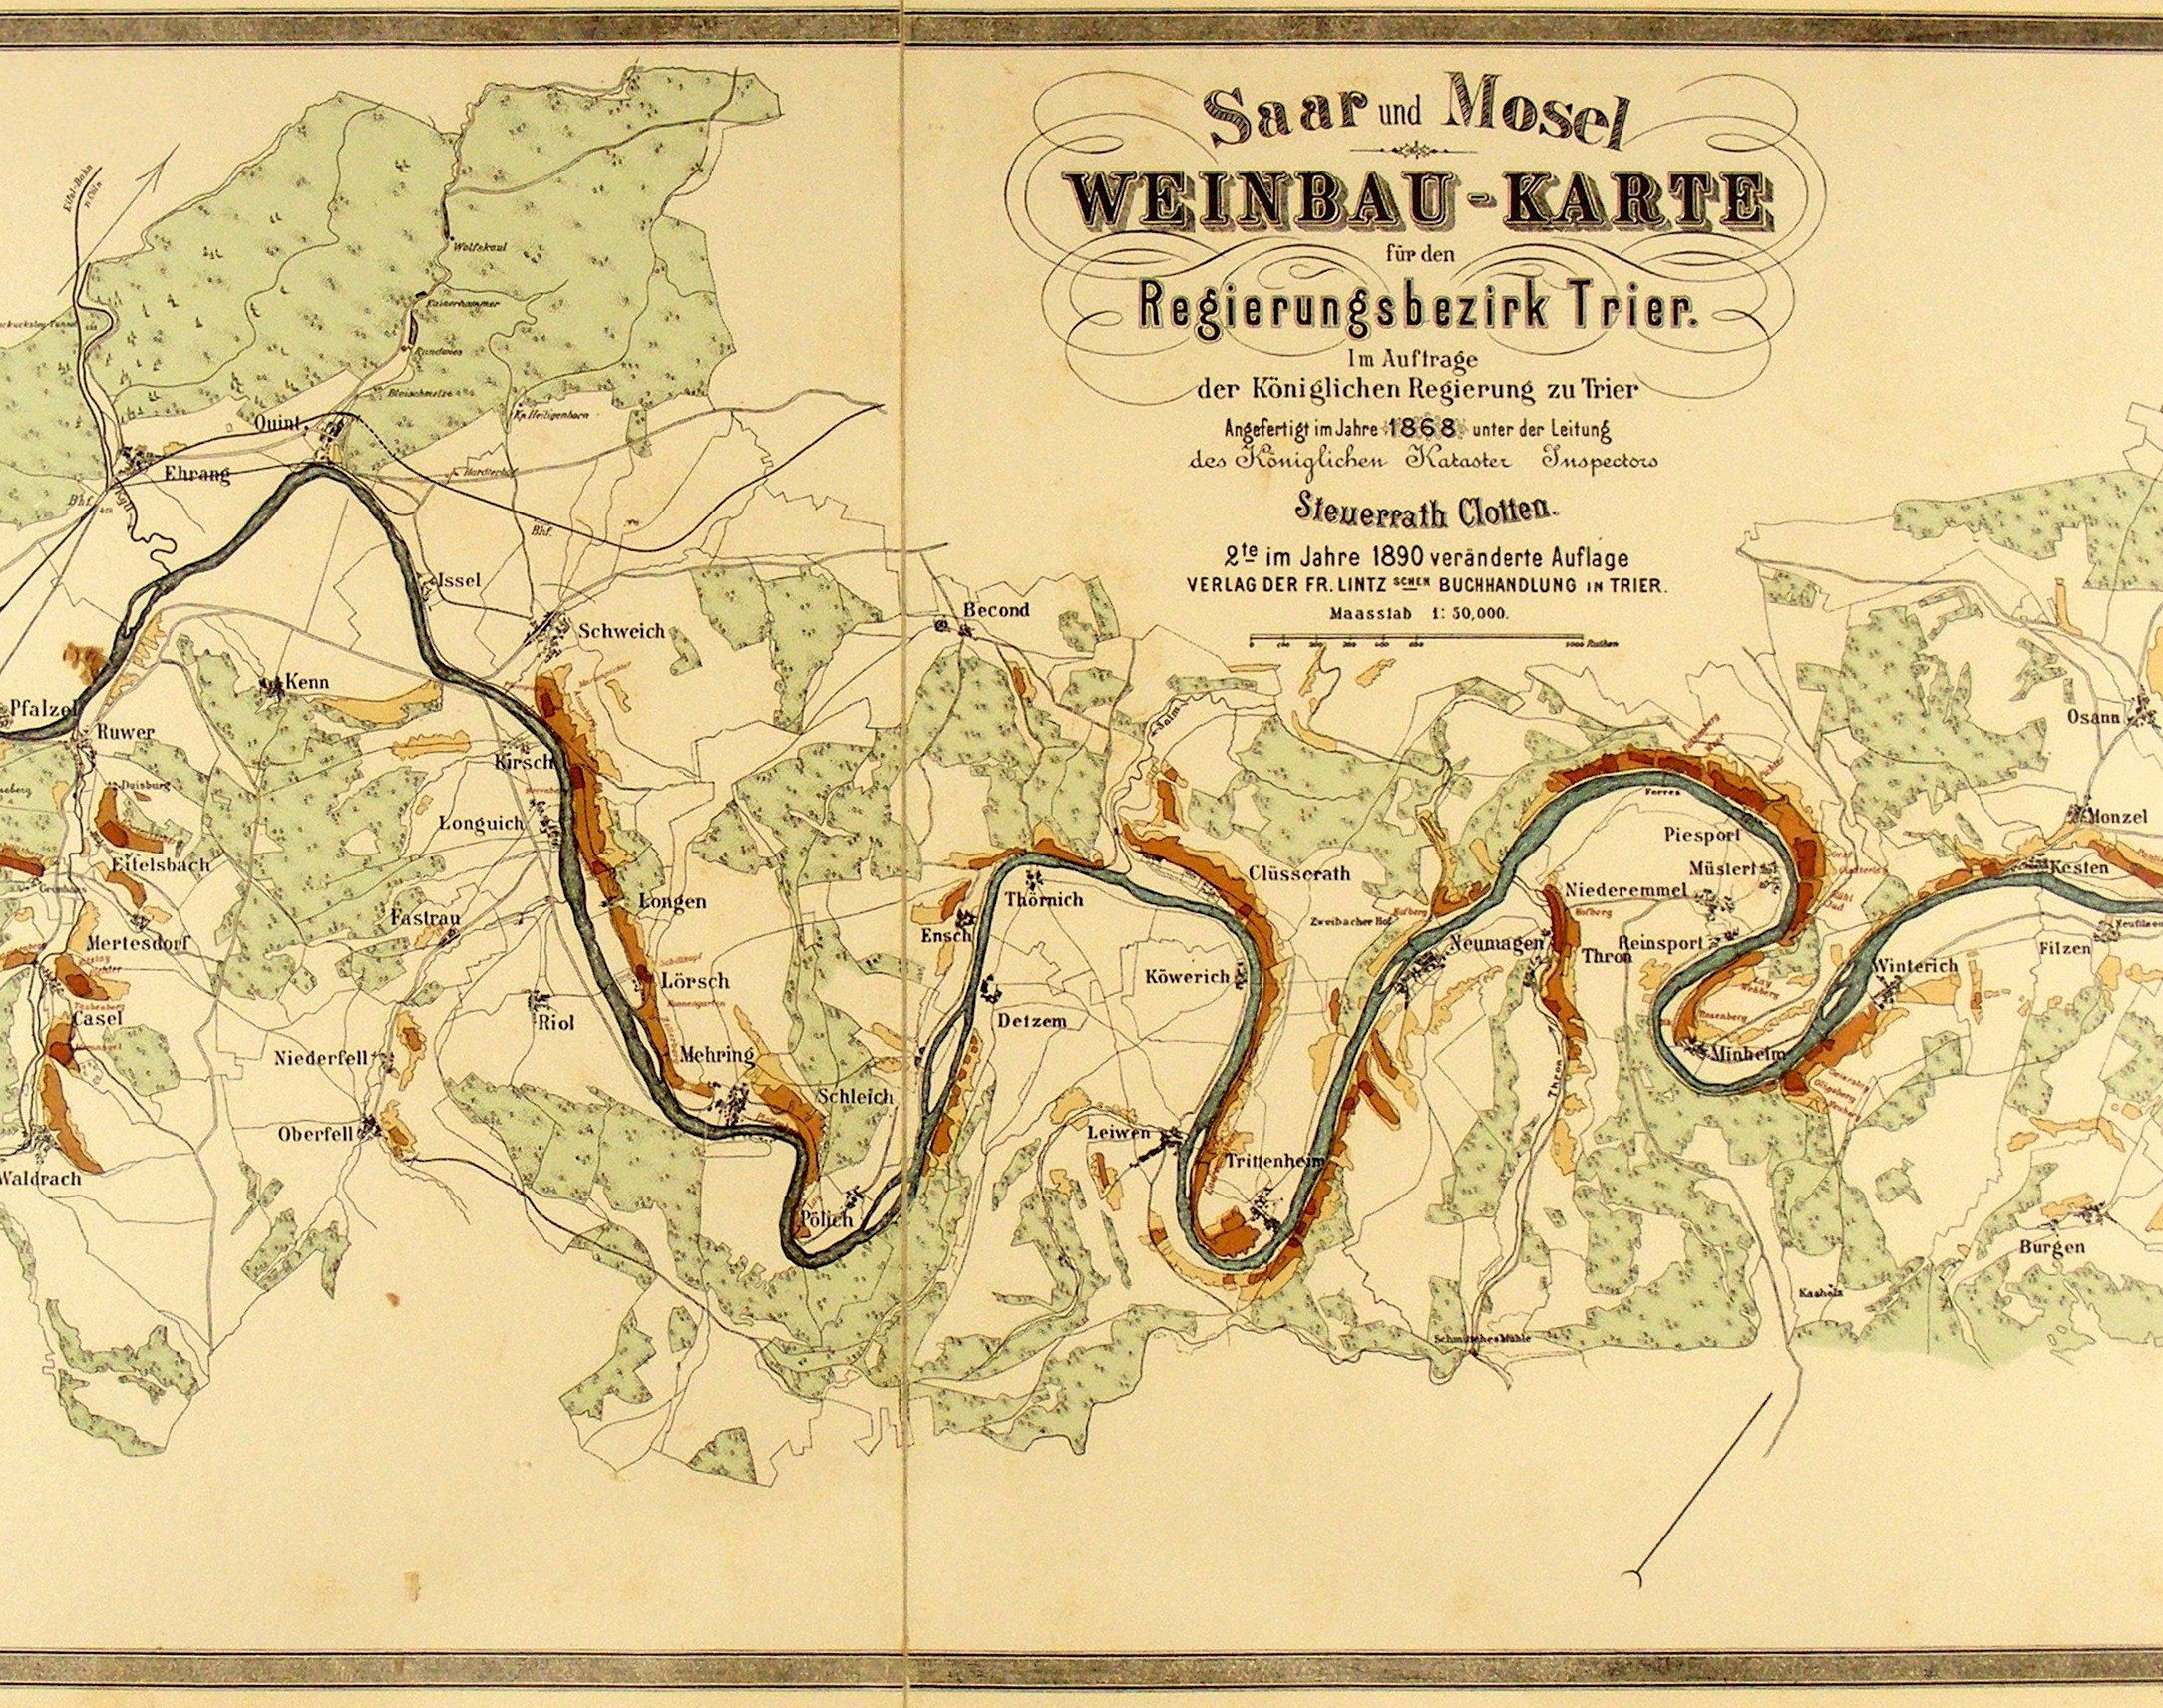 Old map tracing the Mosel and Saar Rivers.